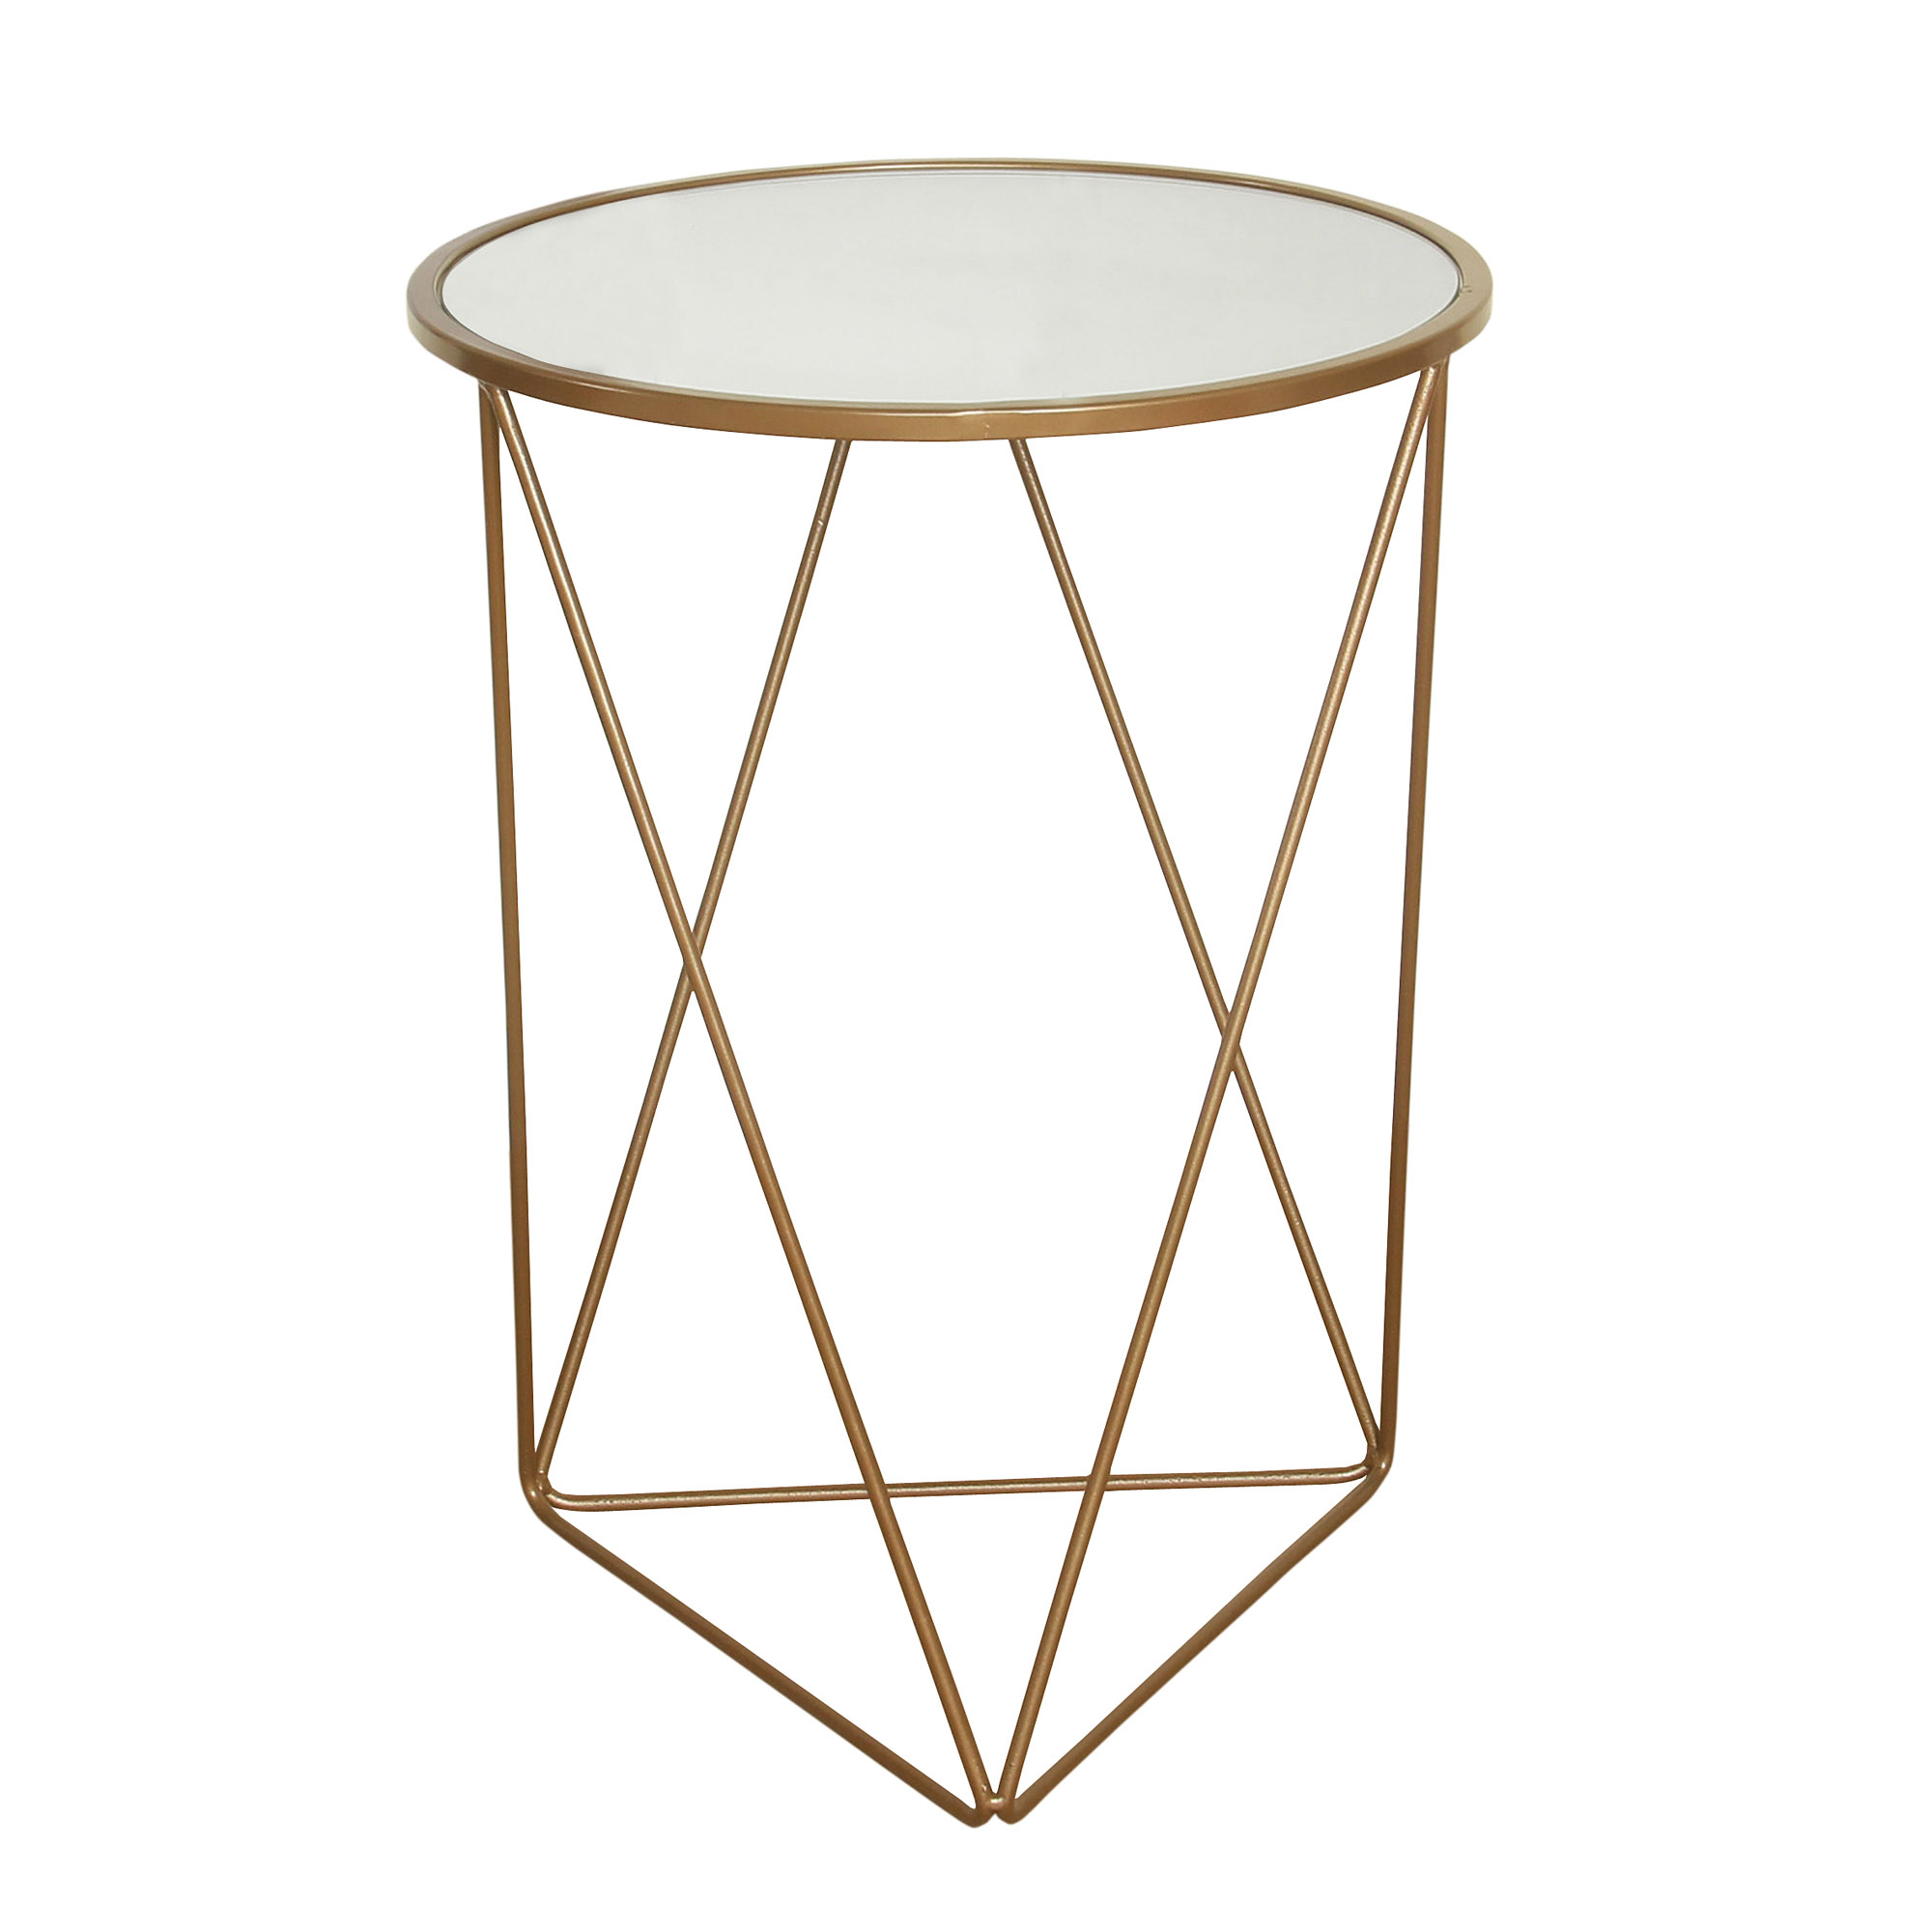 nesting tables diy gold accent table ideas homemade decor end leg small wood tops coffee simple plans full size pool and patio furniture kohls printable coupon fun live edge round